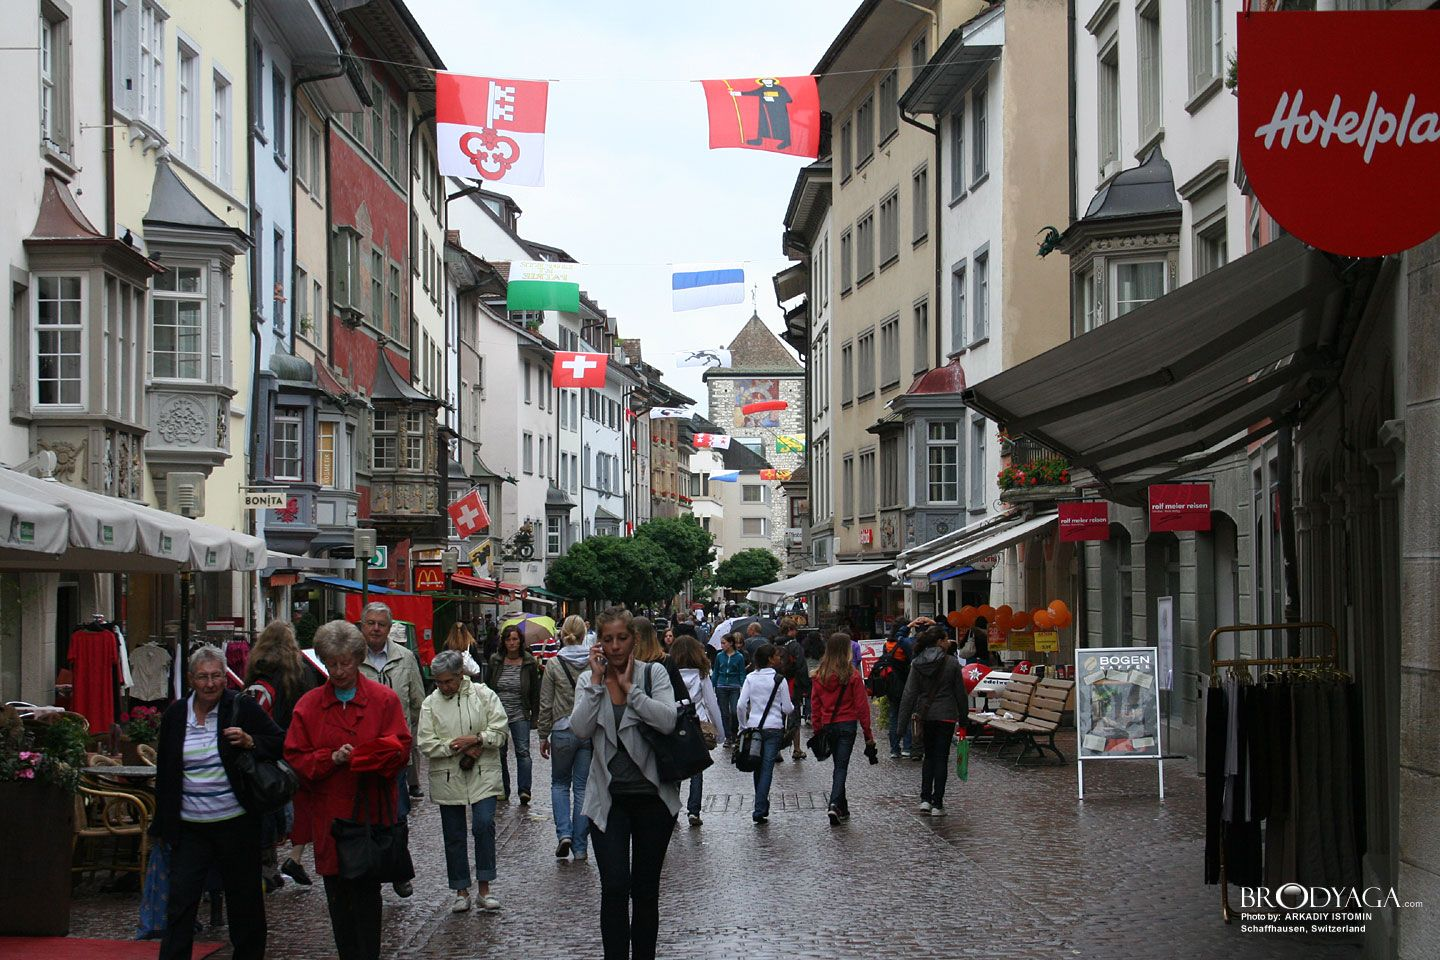 Google Image Result for http://www.brodyaga.com/pages/photos/Switzerland/Schaffhausen%2520Switzerland%25201282288207(www.brodyaga.com).jpg